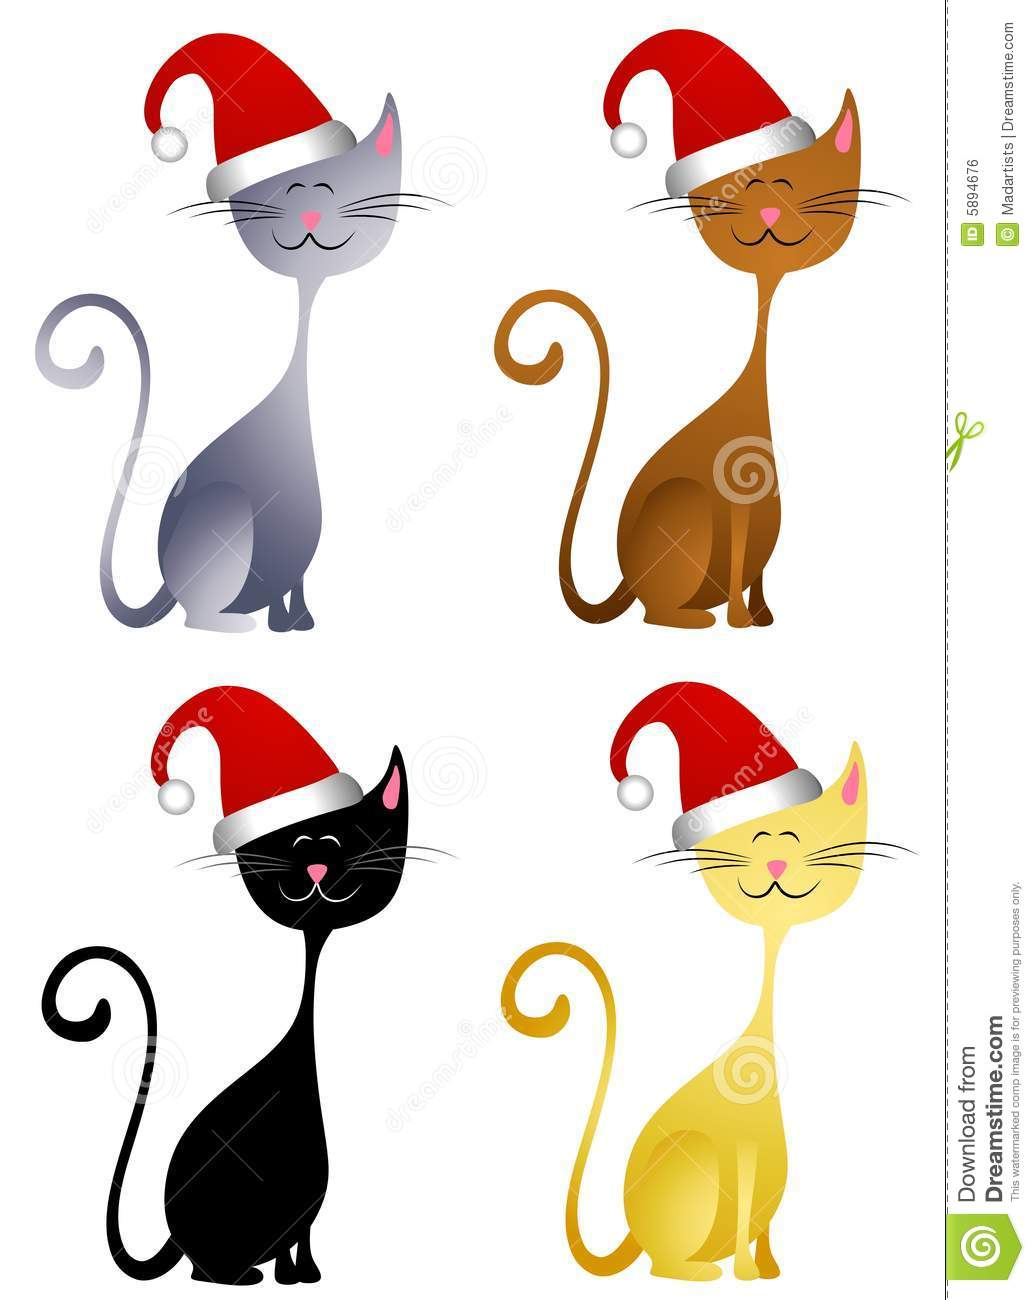 happy christmas hat cats stock illustration illustration of rh dreamstime com christmas kitty clipart christmas dog and cat clipart